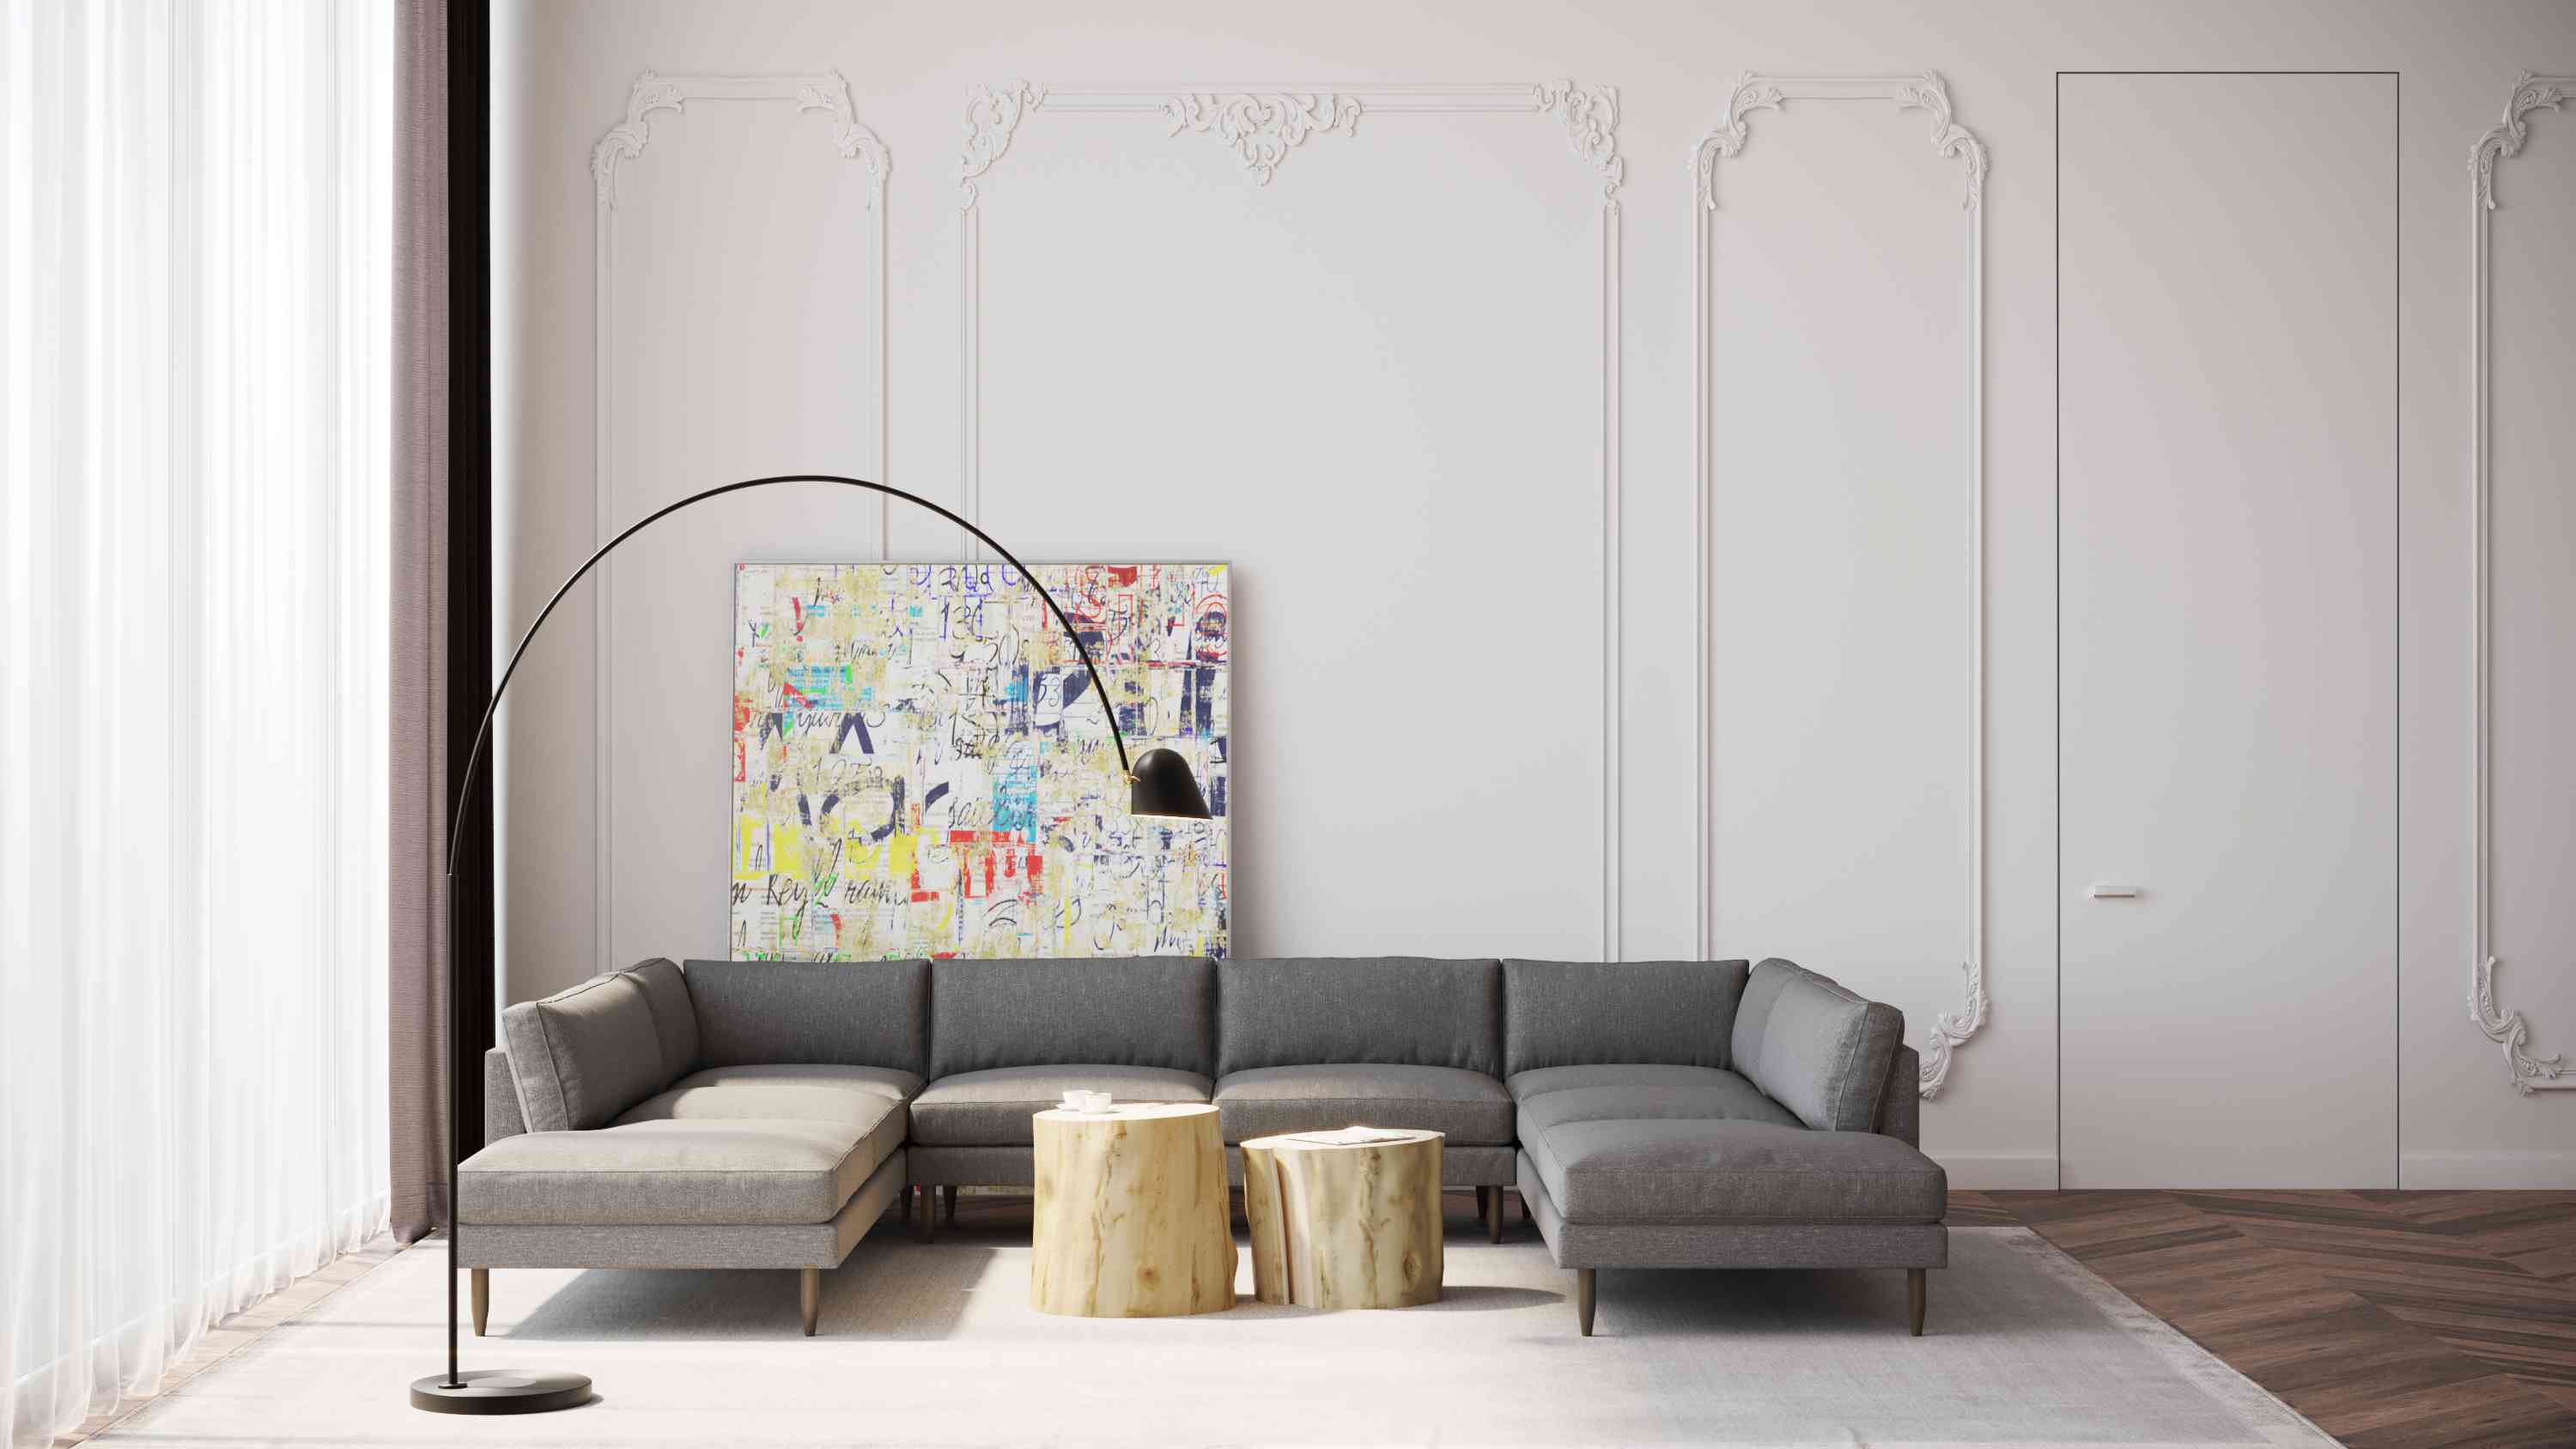 gray sectional sofa in room with tall, textured white walls